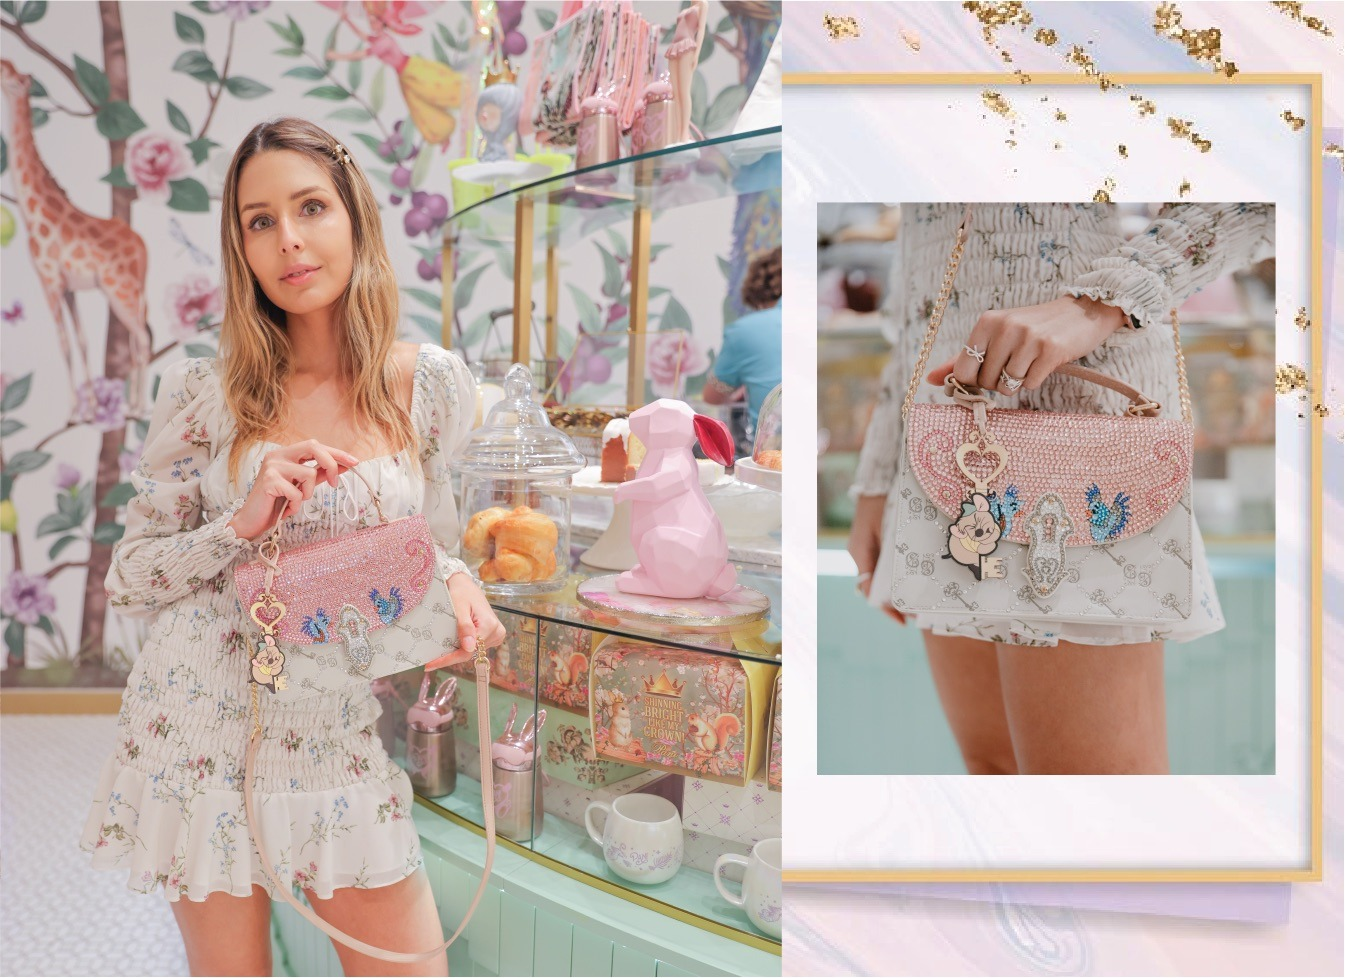 Introducing the New Crystalized Disney Cinderella Collections by Danielle Nicole 1